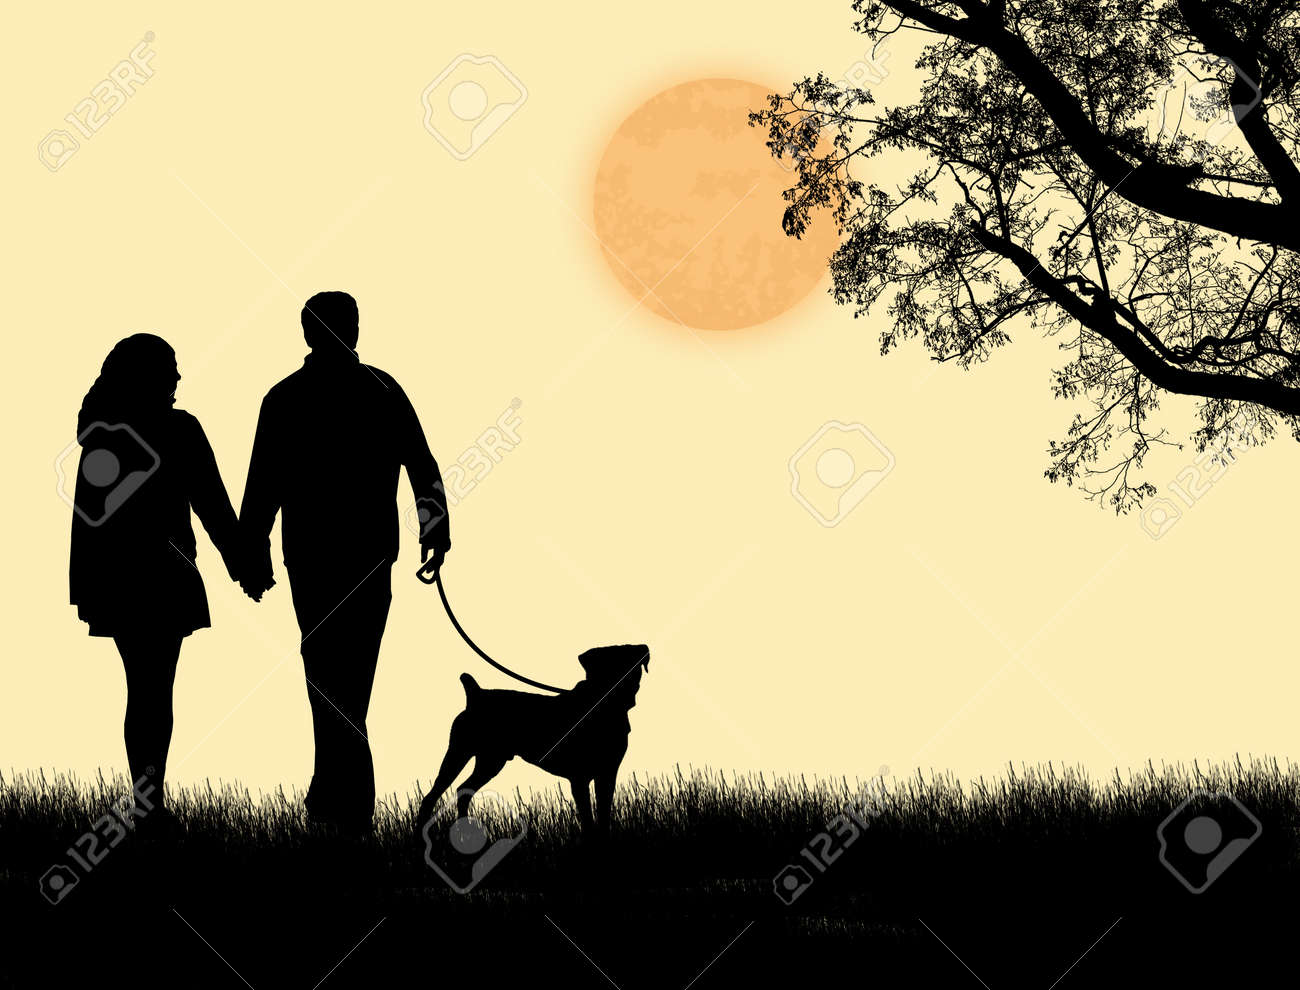 Silhouette of a couple walking their dog on sunset, vector illustration Stock Vector - 13545873